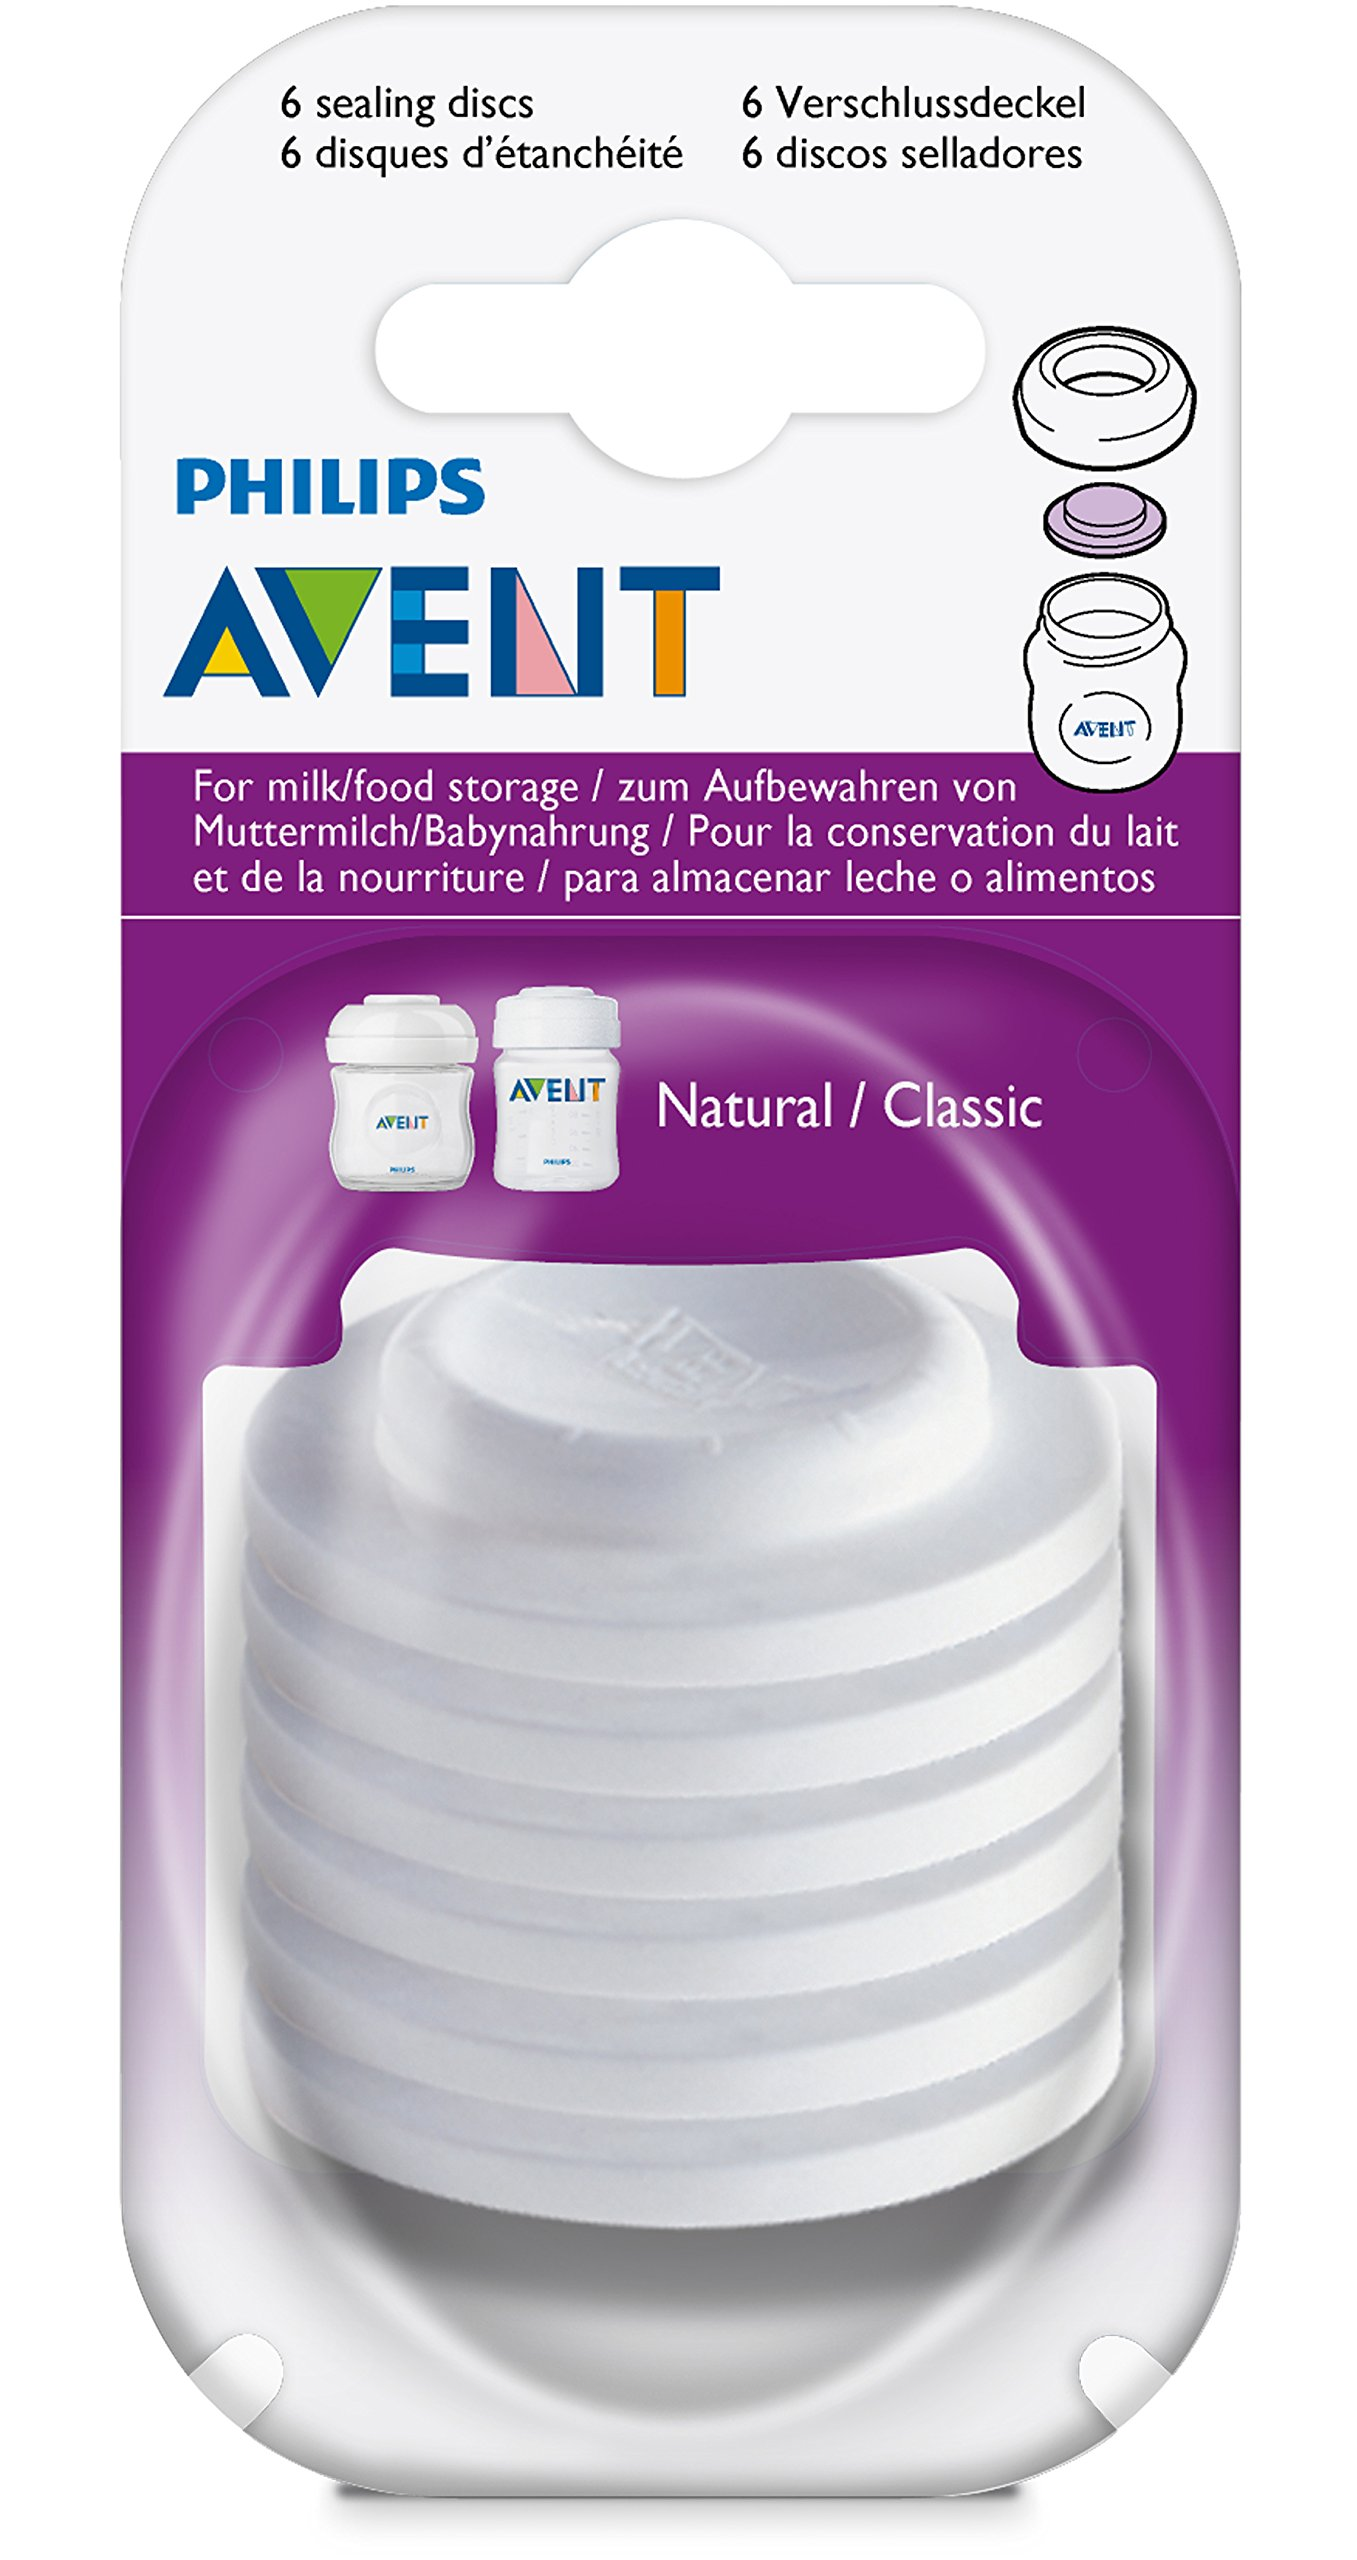 Philips AVENT BPA Free Classic Bottle (6 Sealing Discs)